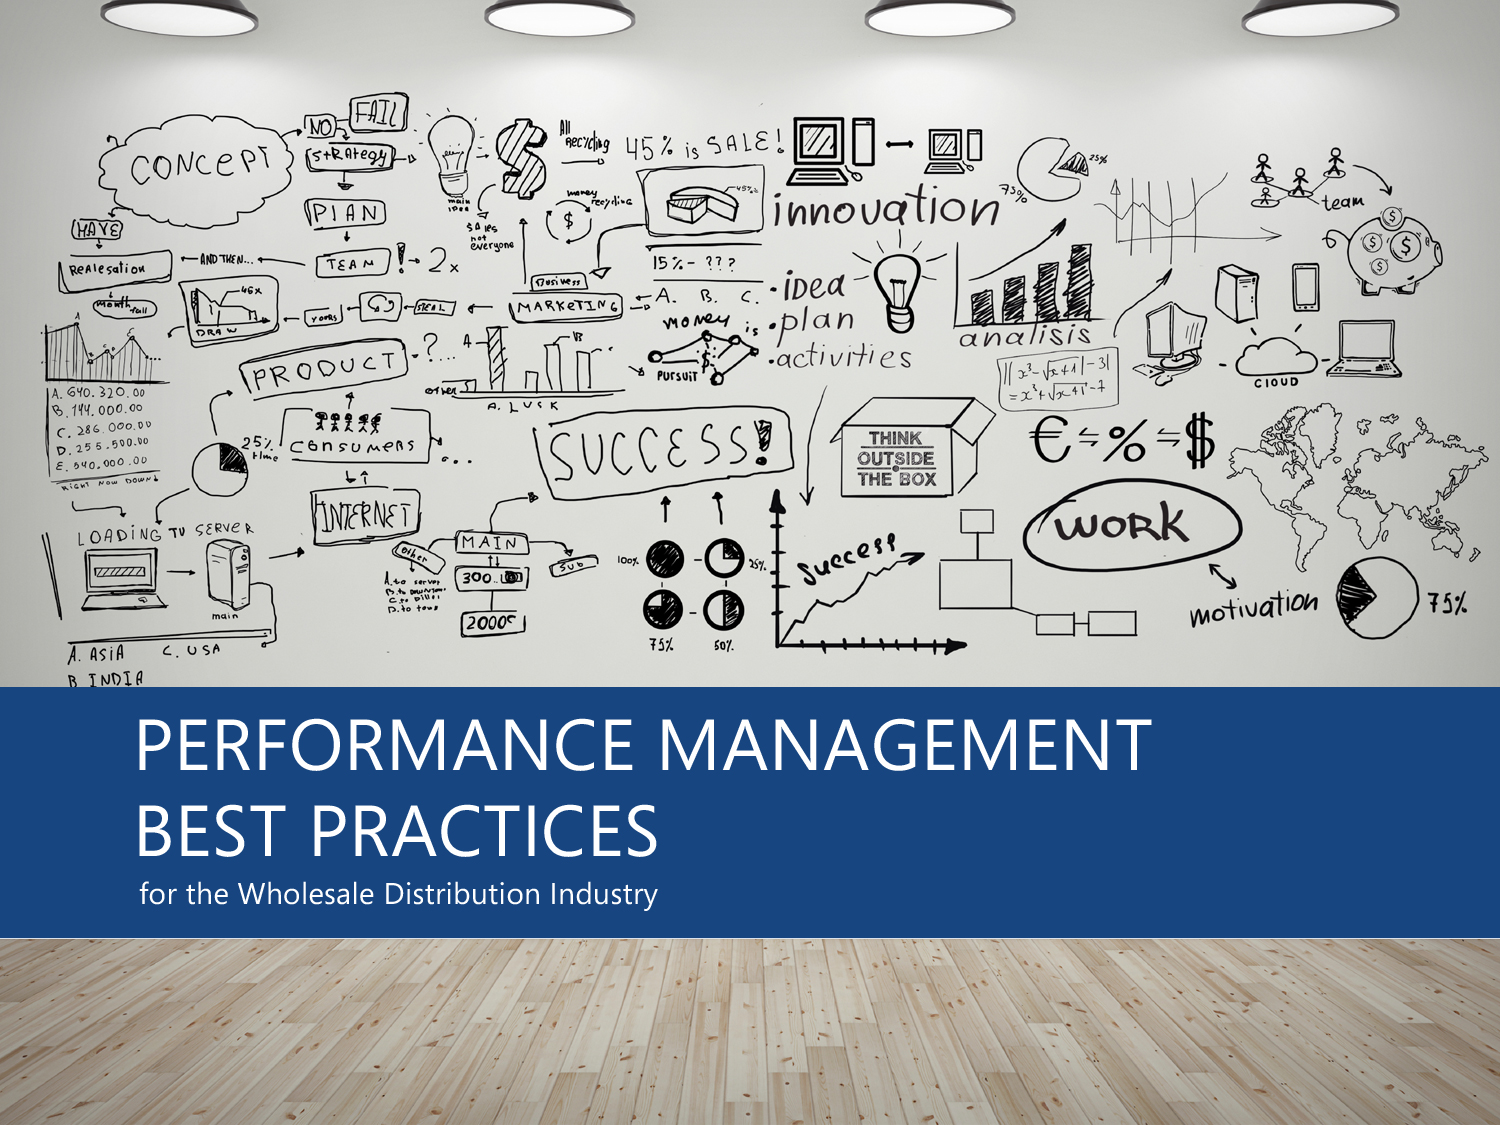 Performance Management Best Practices For The Wholesale